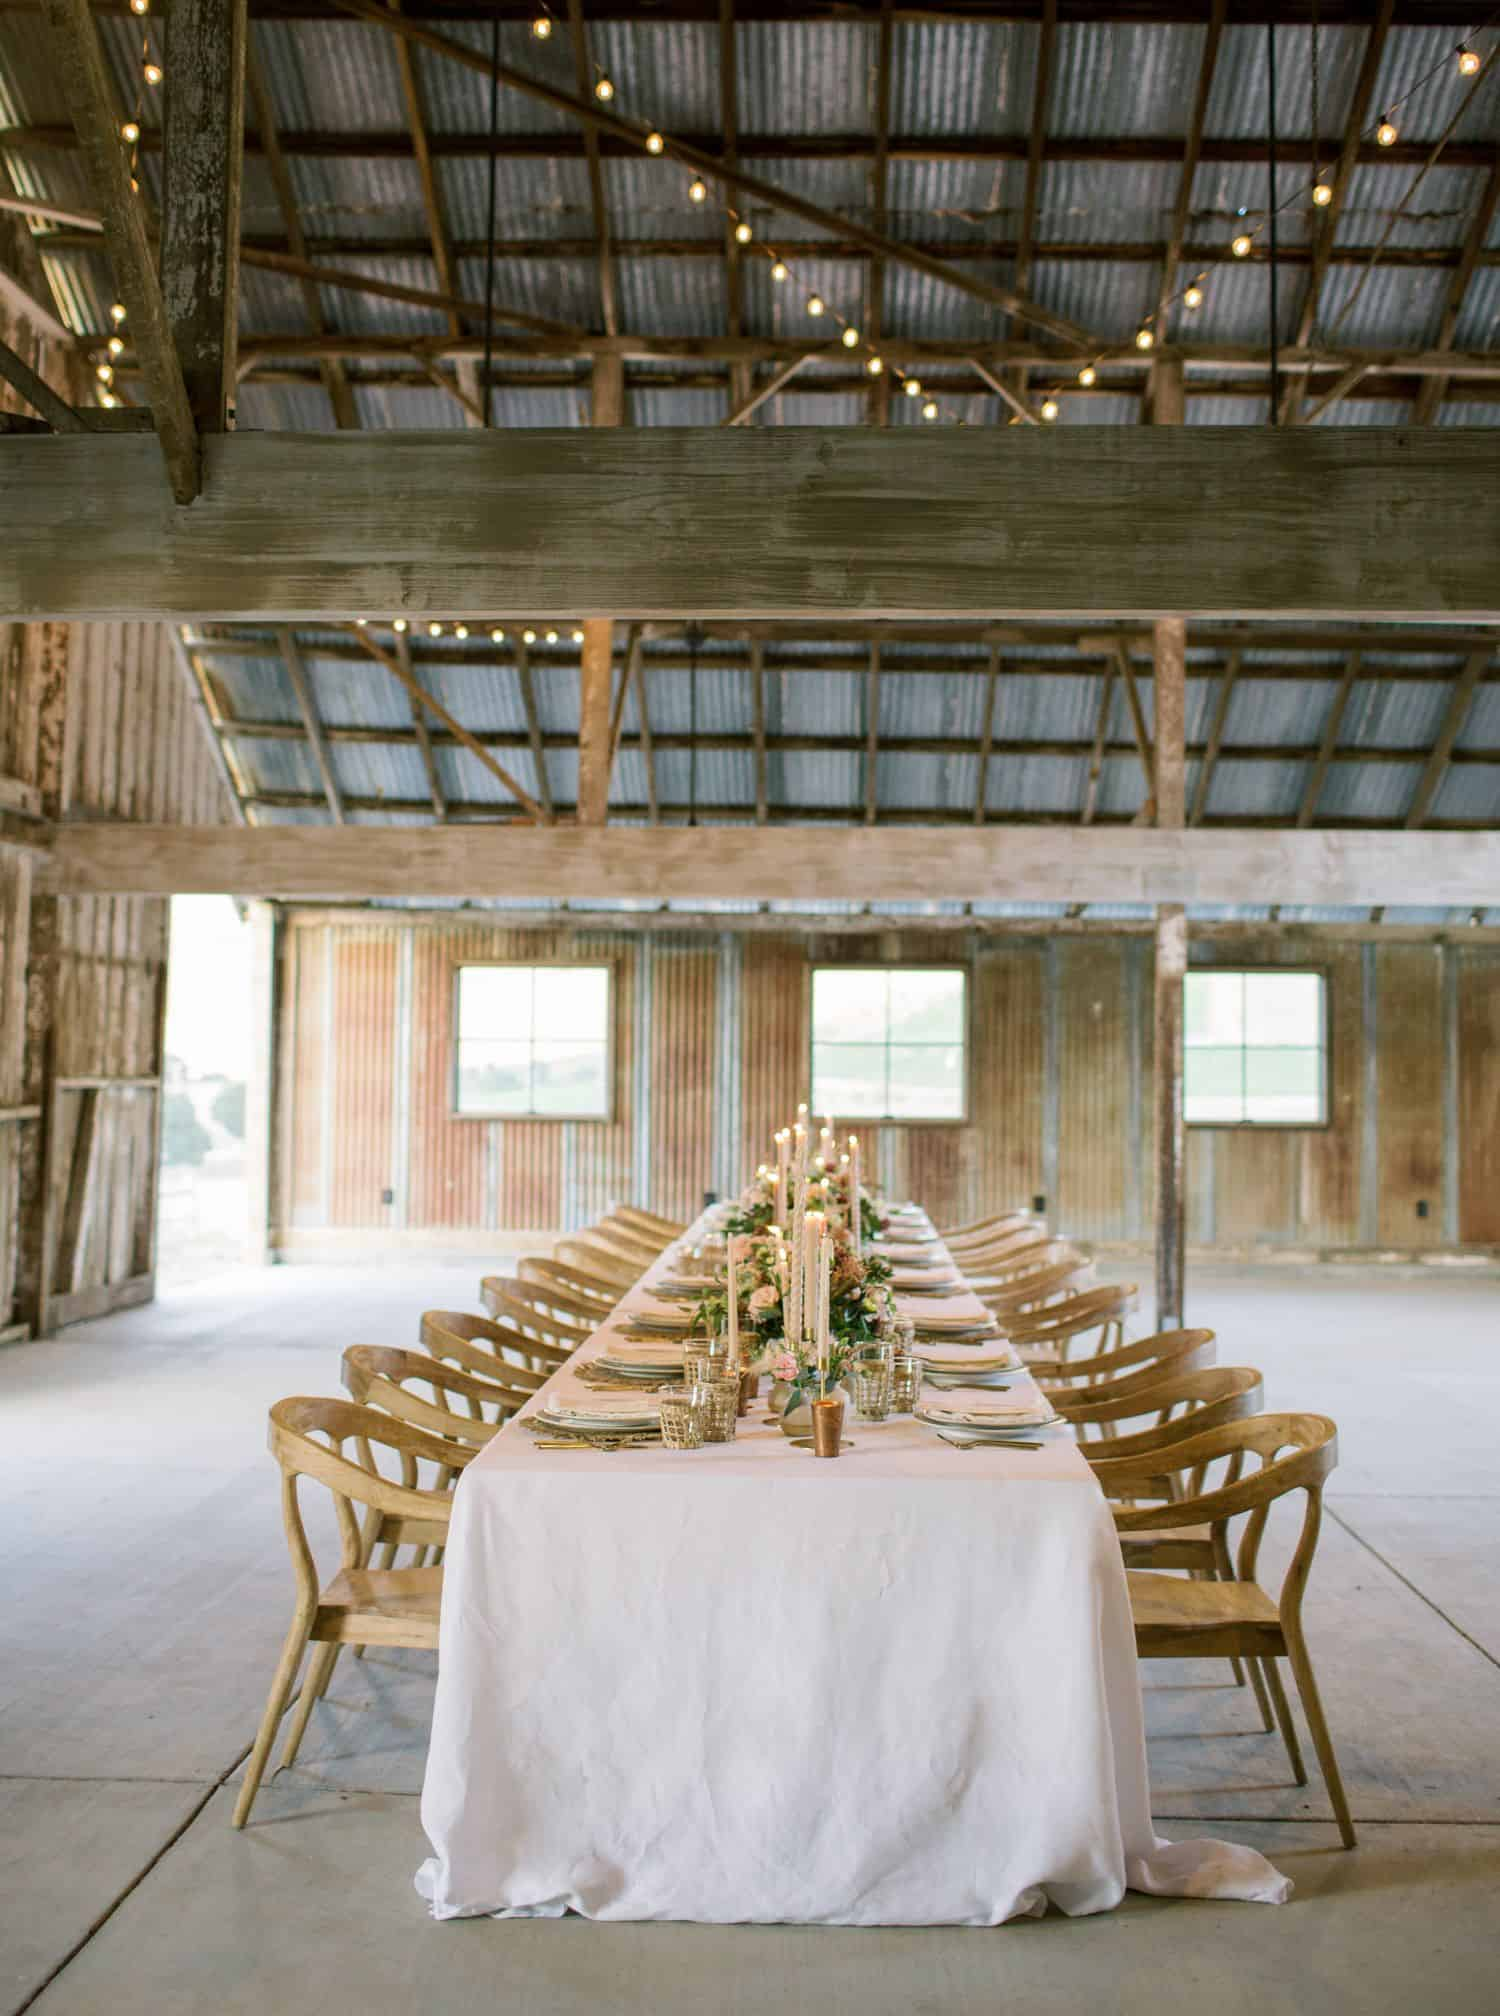 Intimate Wine Country Wedding Reception - Mindy Gayer Design Co.